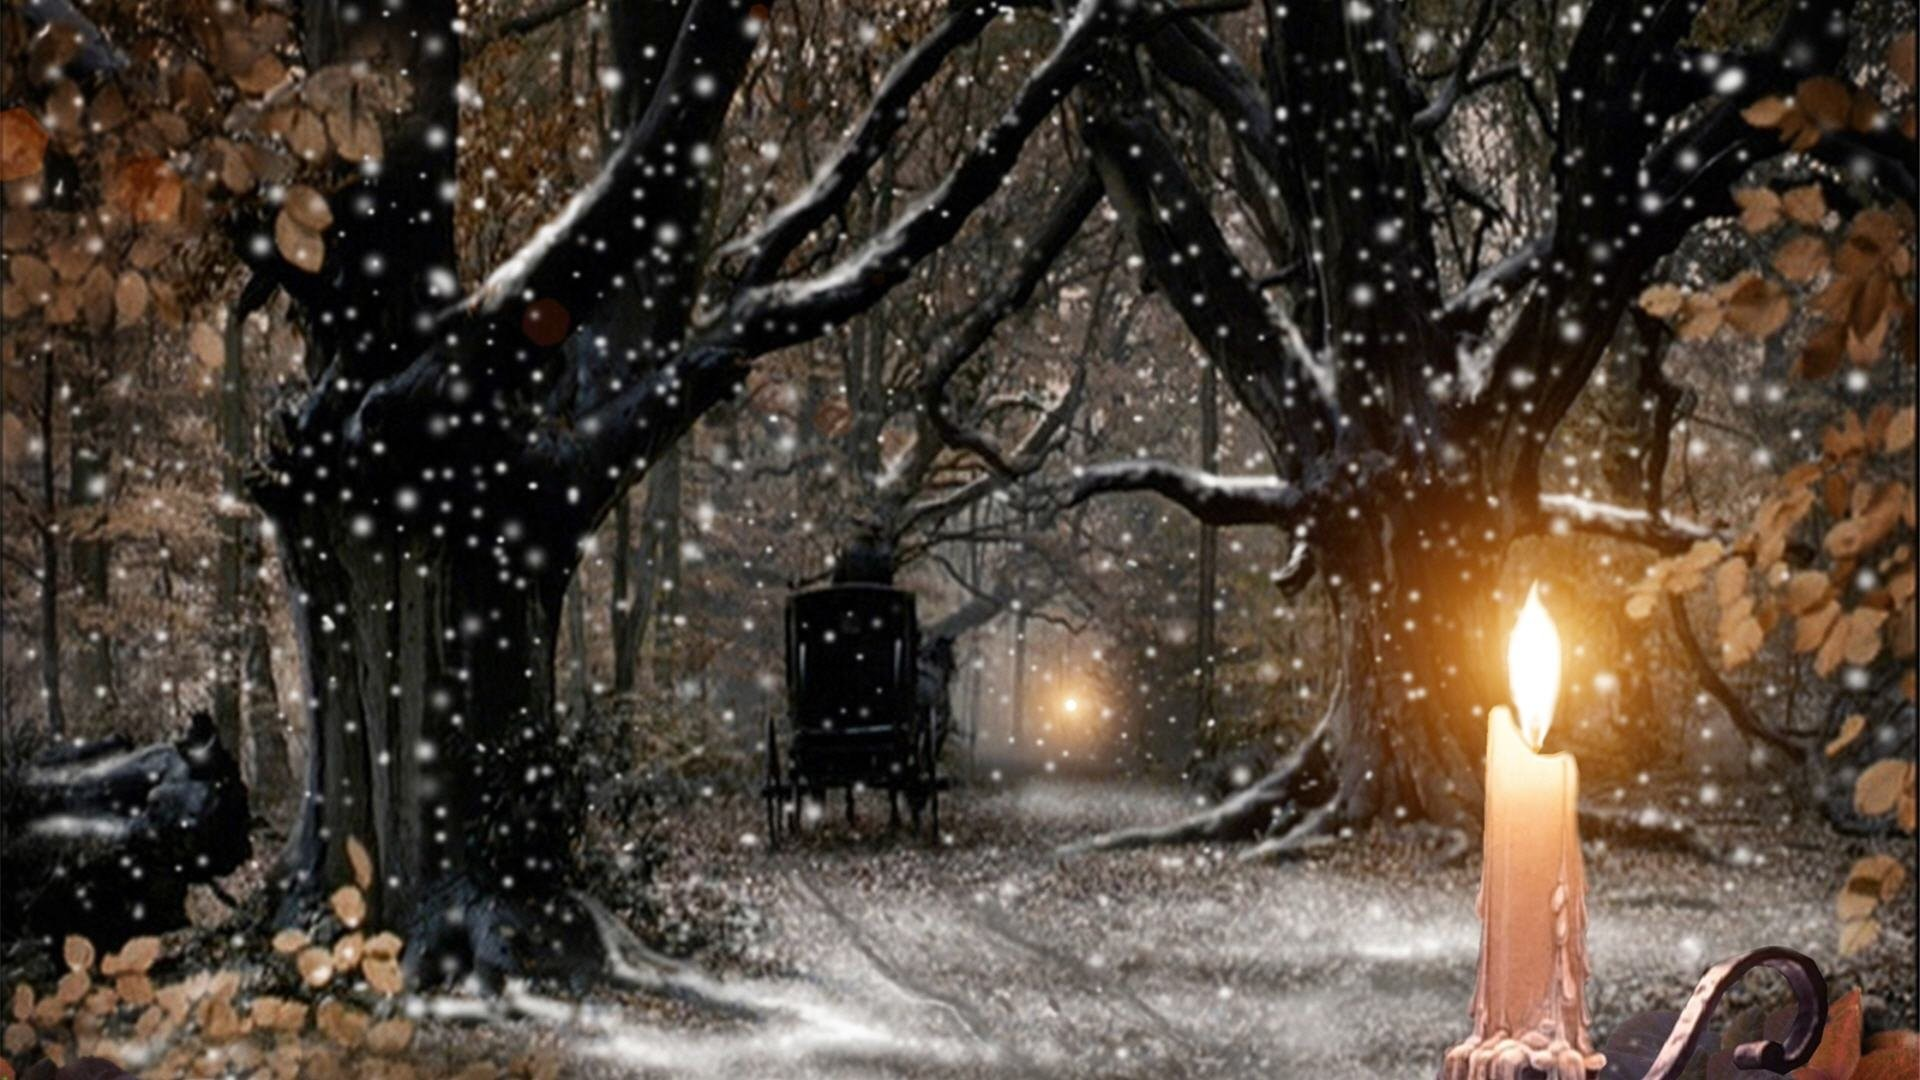 christmas hd widescreen wallpaper 1920x1080  61  images